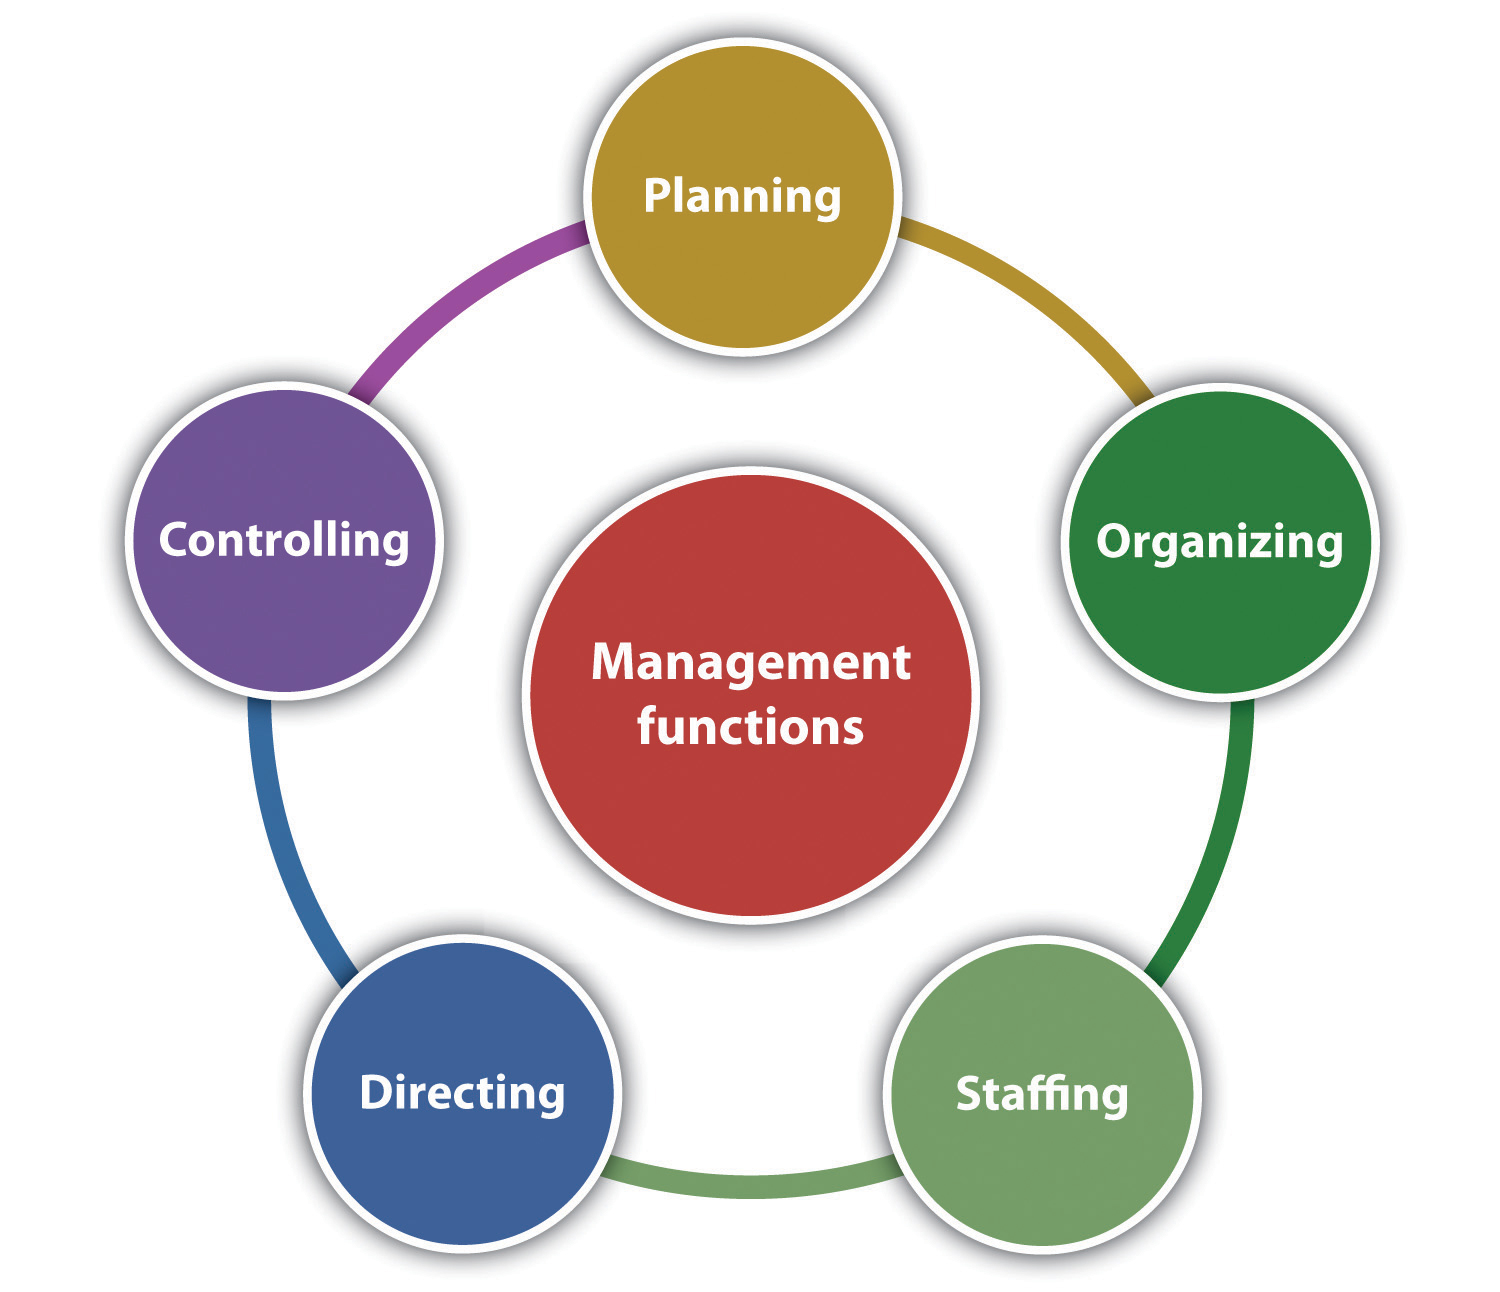 the importance of quality human resources management in successful business organizations